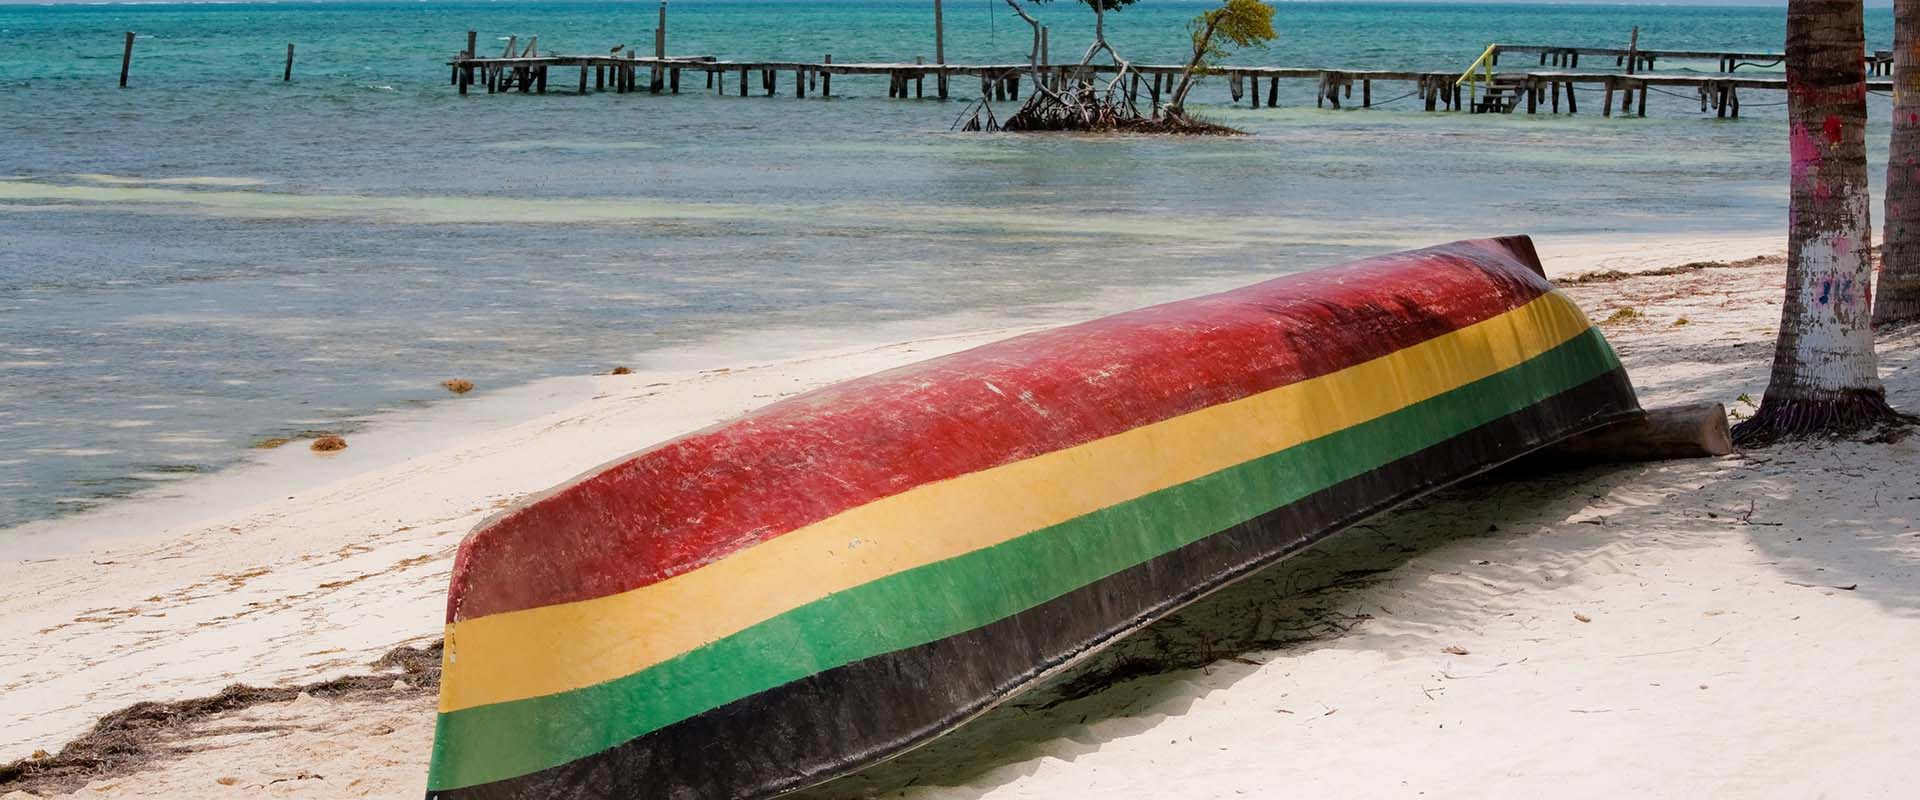 Holidays Traditions Jamaica And